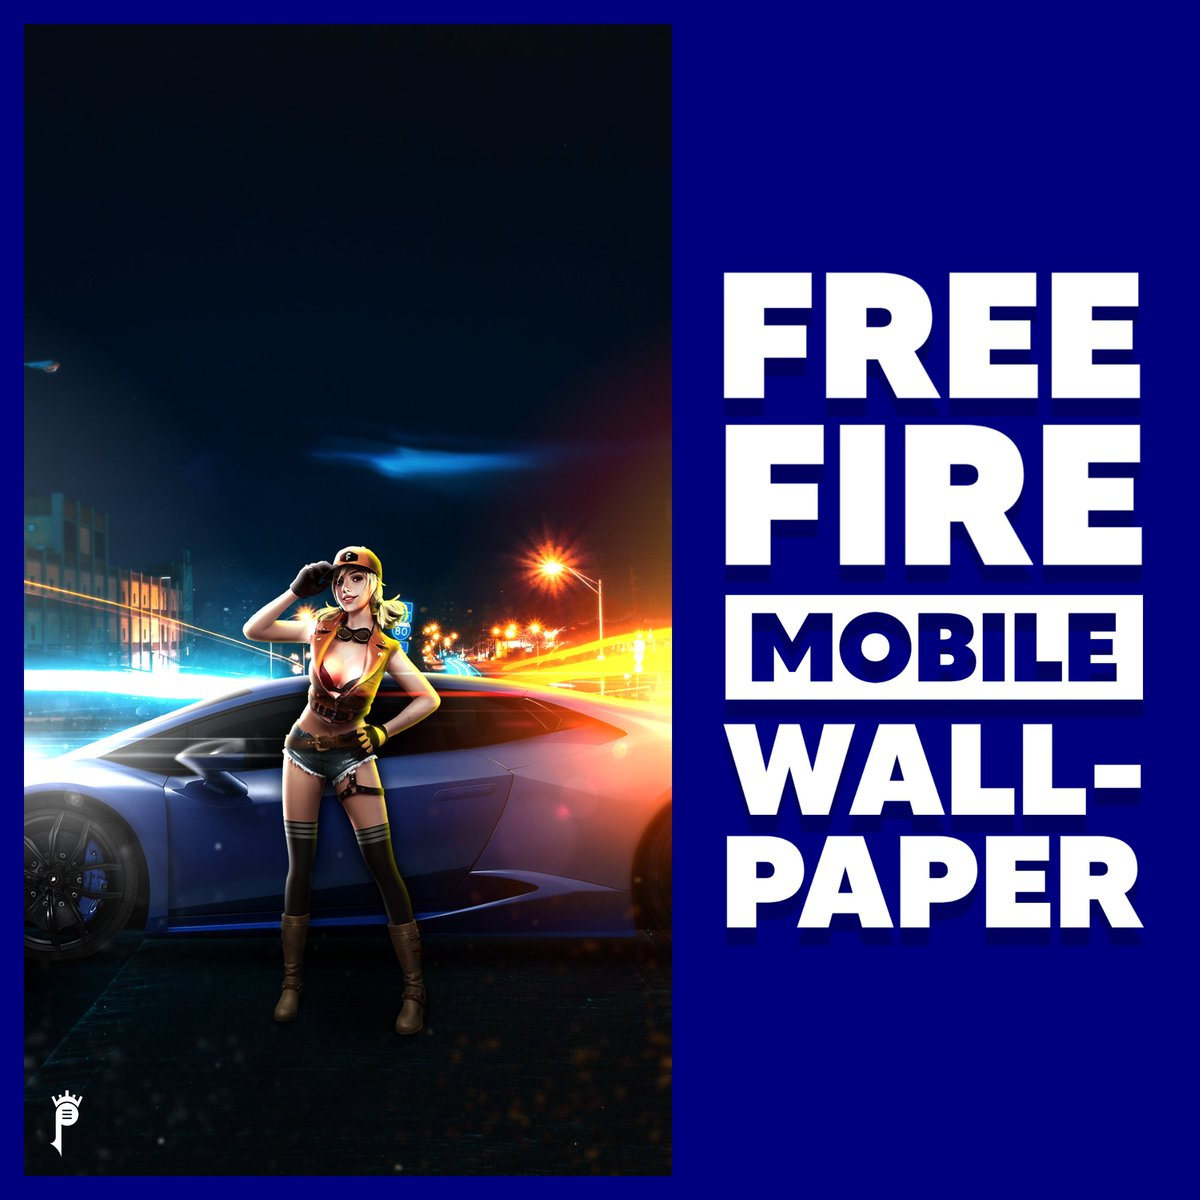 Hey guys,I just made a free wallpaper for free fire lovers. Inspired by @NoiseStructure & @tigervisuals Made on android with Pscc. Any type of support is appreciated. Download link :- https://drive.google.com/file/d/1cGHcV5GE8_cCddEAcdhy0H_-7fMVYlt6/view?usp=drivesdk… . #freefireindia #gfxdesigner #graphicdesigner  (Me nub in tags)LMAOpic.twitter.com/iEJPaHcf8E